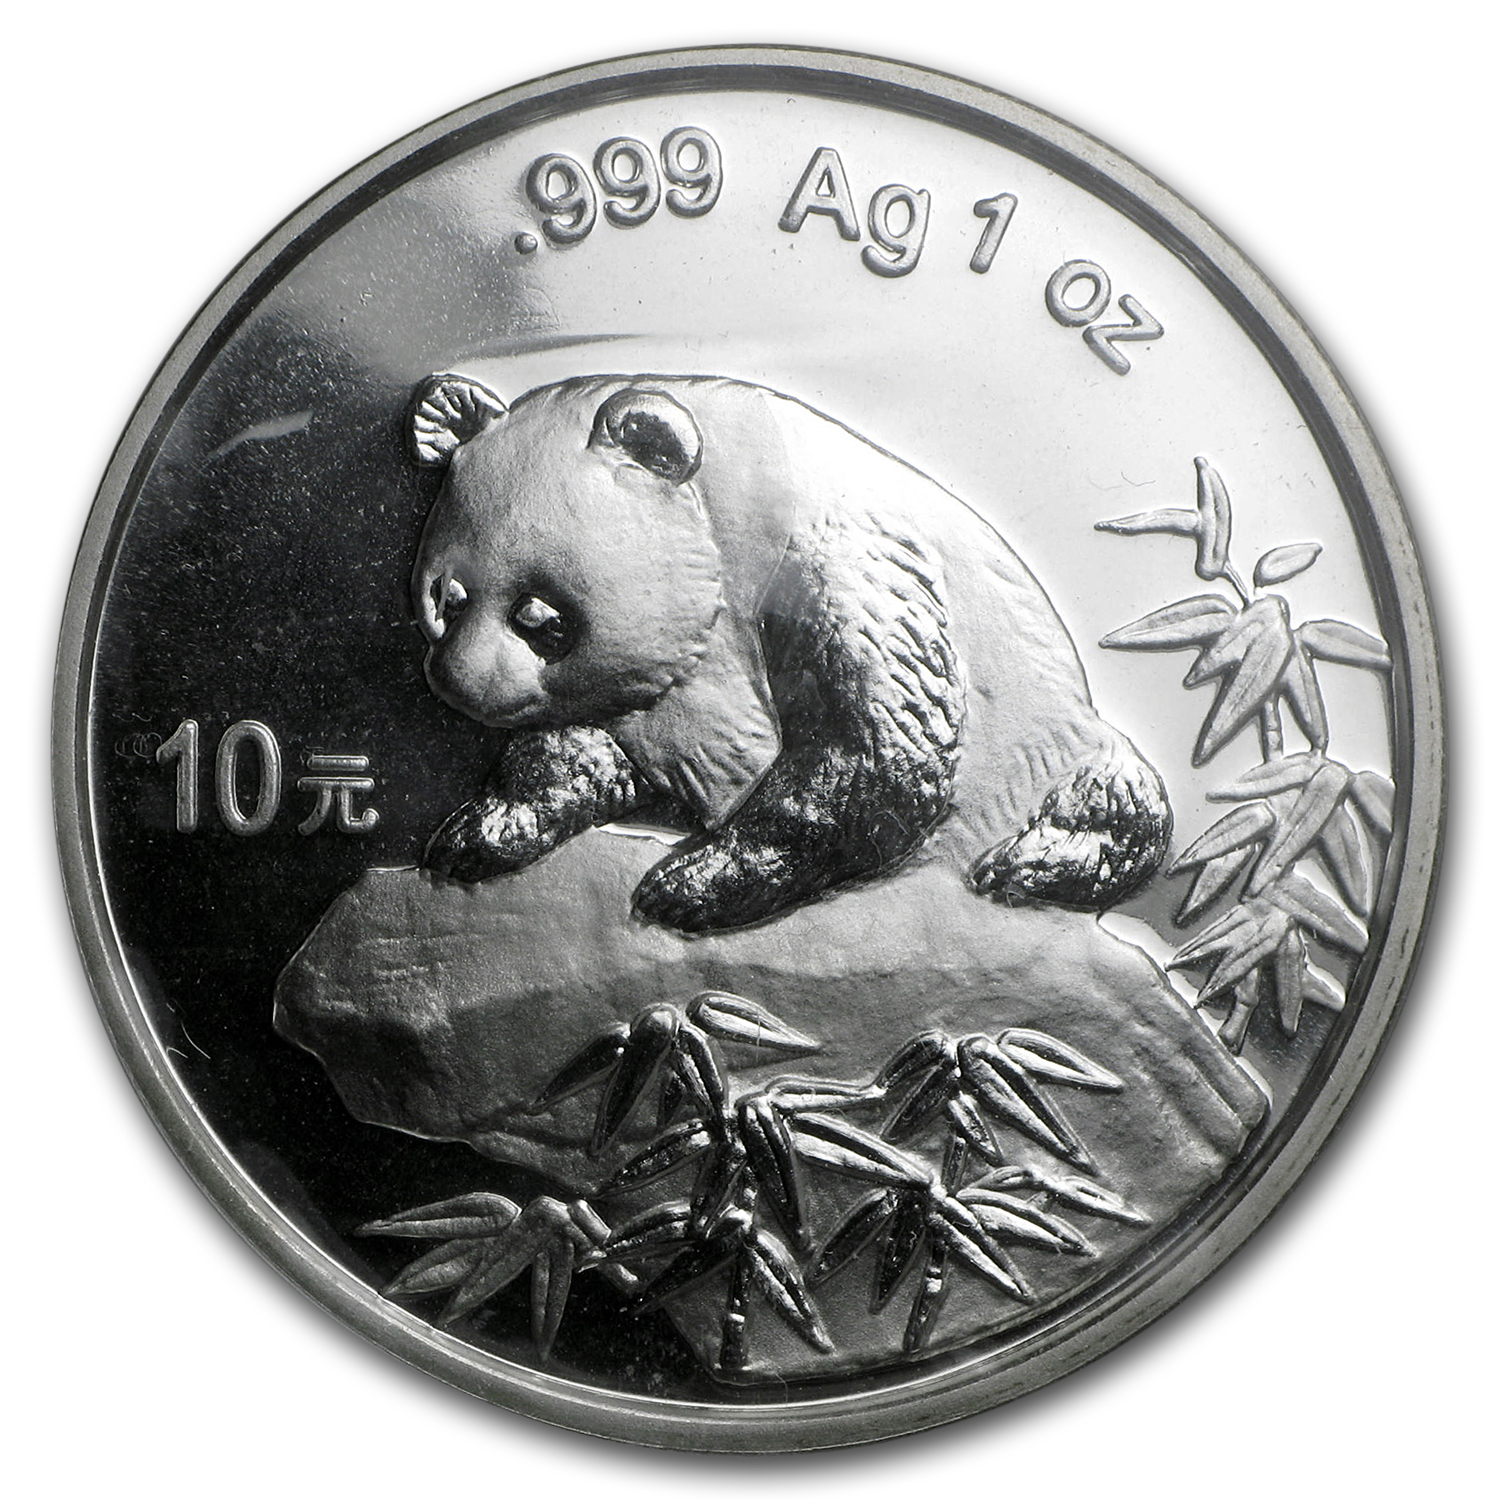 1999 1 oz Silver Chinese Panda Small Date BU (Sealed)